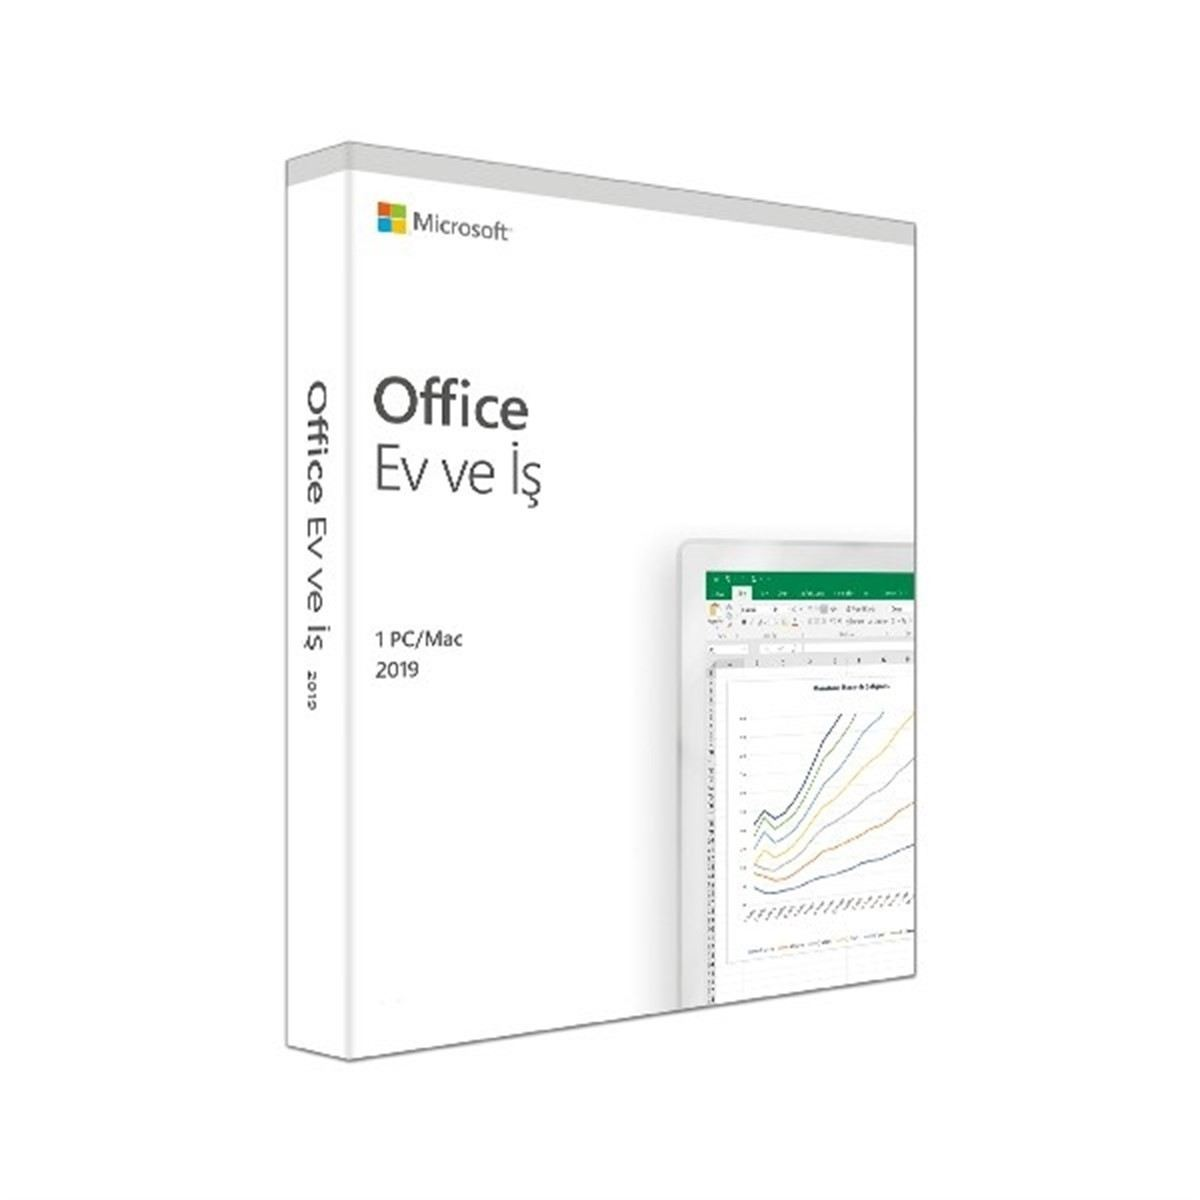 MS OFFICE 2019 HOME AND BUSINESS TURKCE KUTU